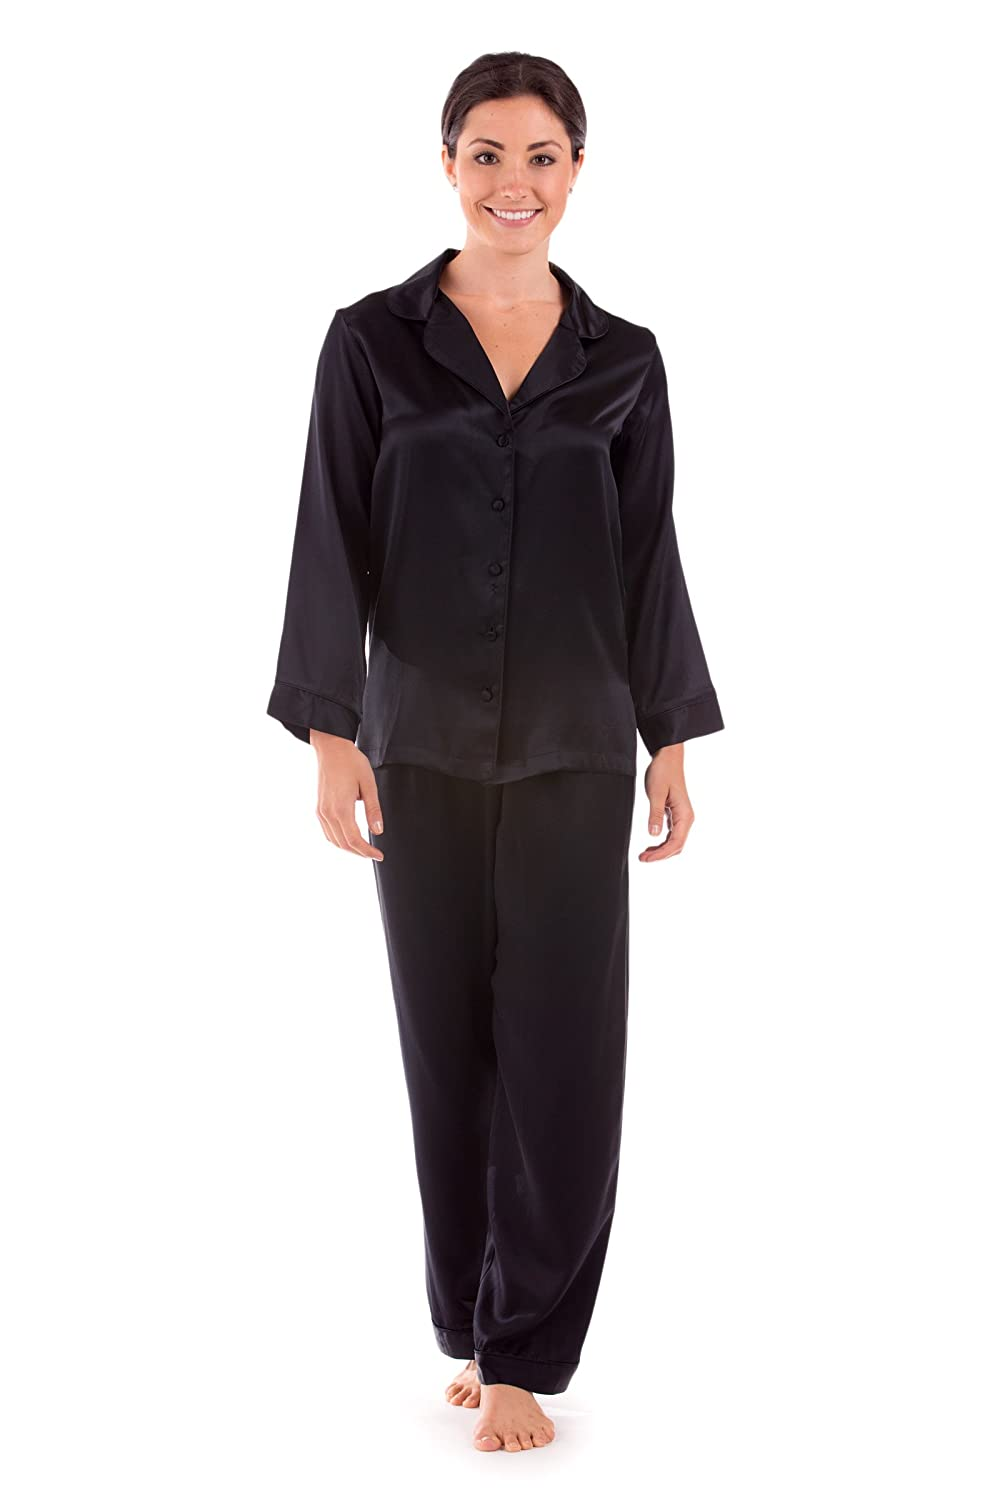 Button Front Pajamas For Women Good Gifts For Senior